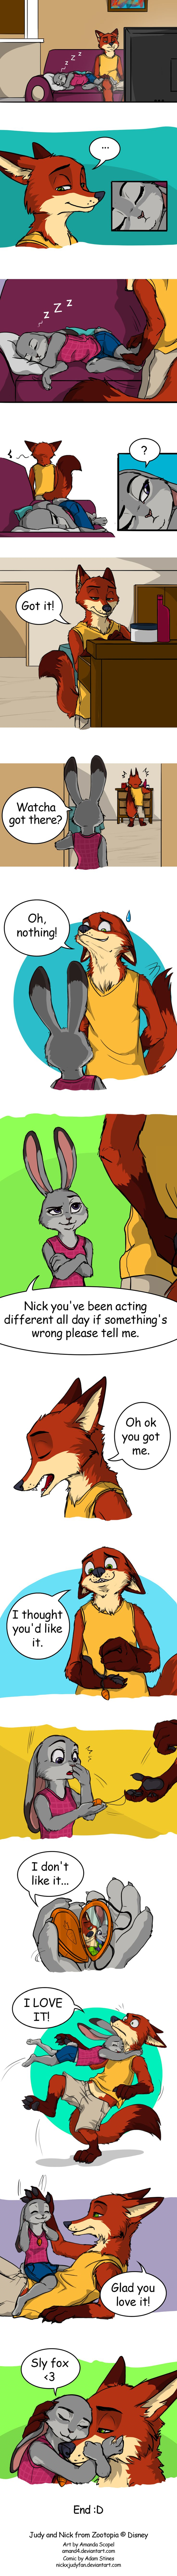 Nick and Judy - Zootopia by Amand4 on DeviantArt